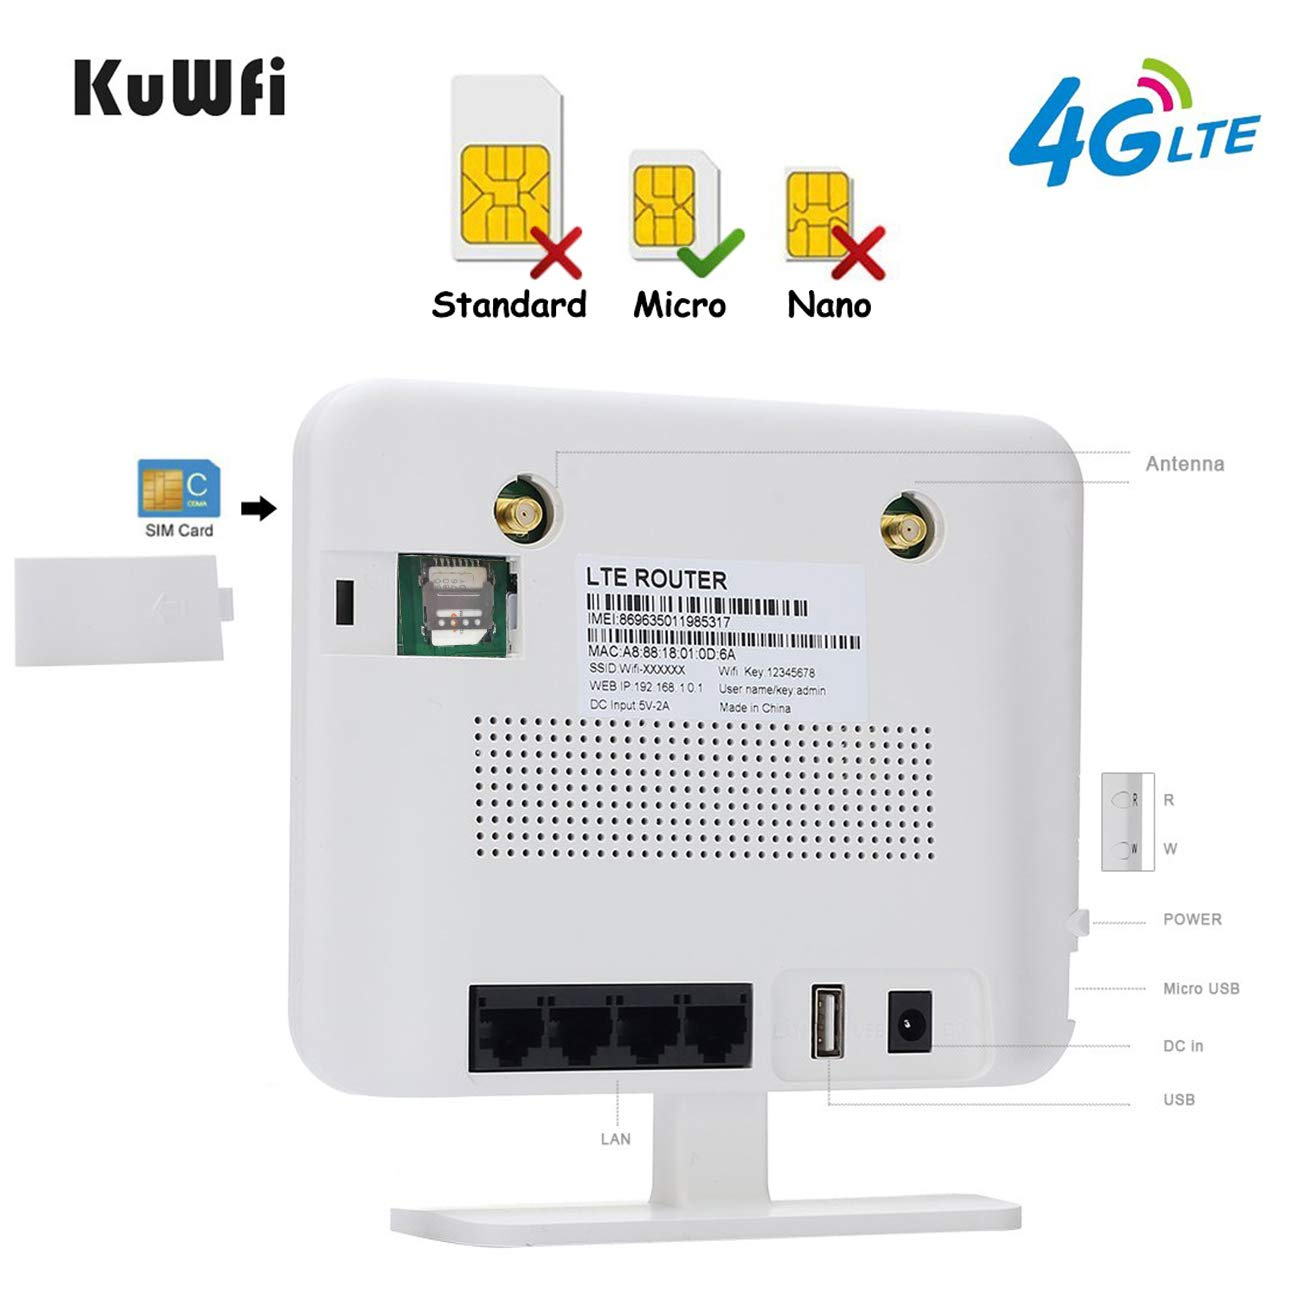 KuWFi 4G LTE CPE Router 300Mbps Unlocked Wireless Routers with SIM Card Slot 2 Outdoor Antenna 4 LAN Port WiFi Hotspot High Speed for 32 Users Work in ...